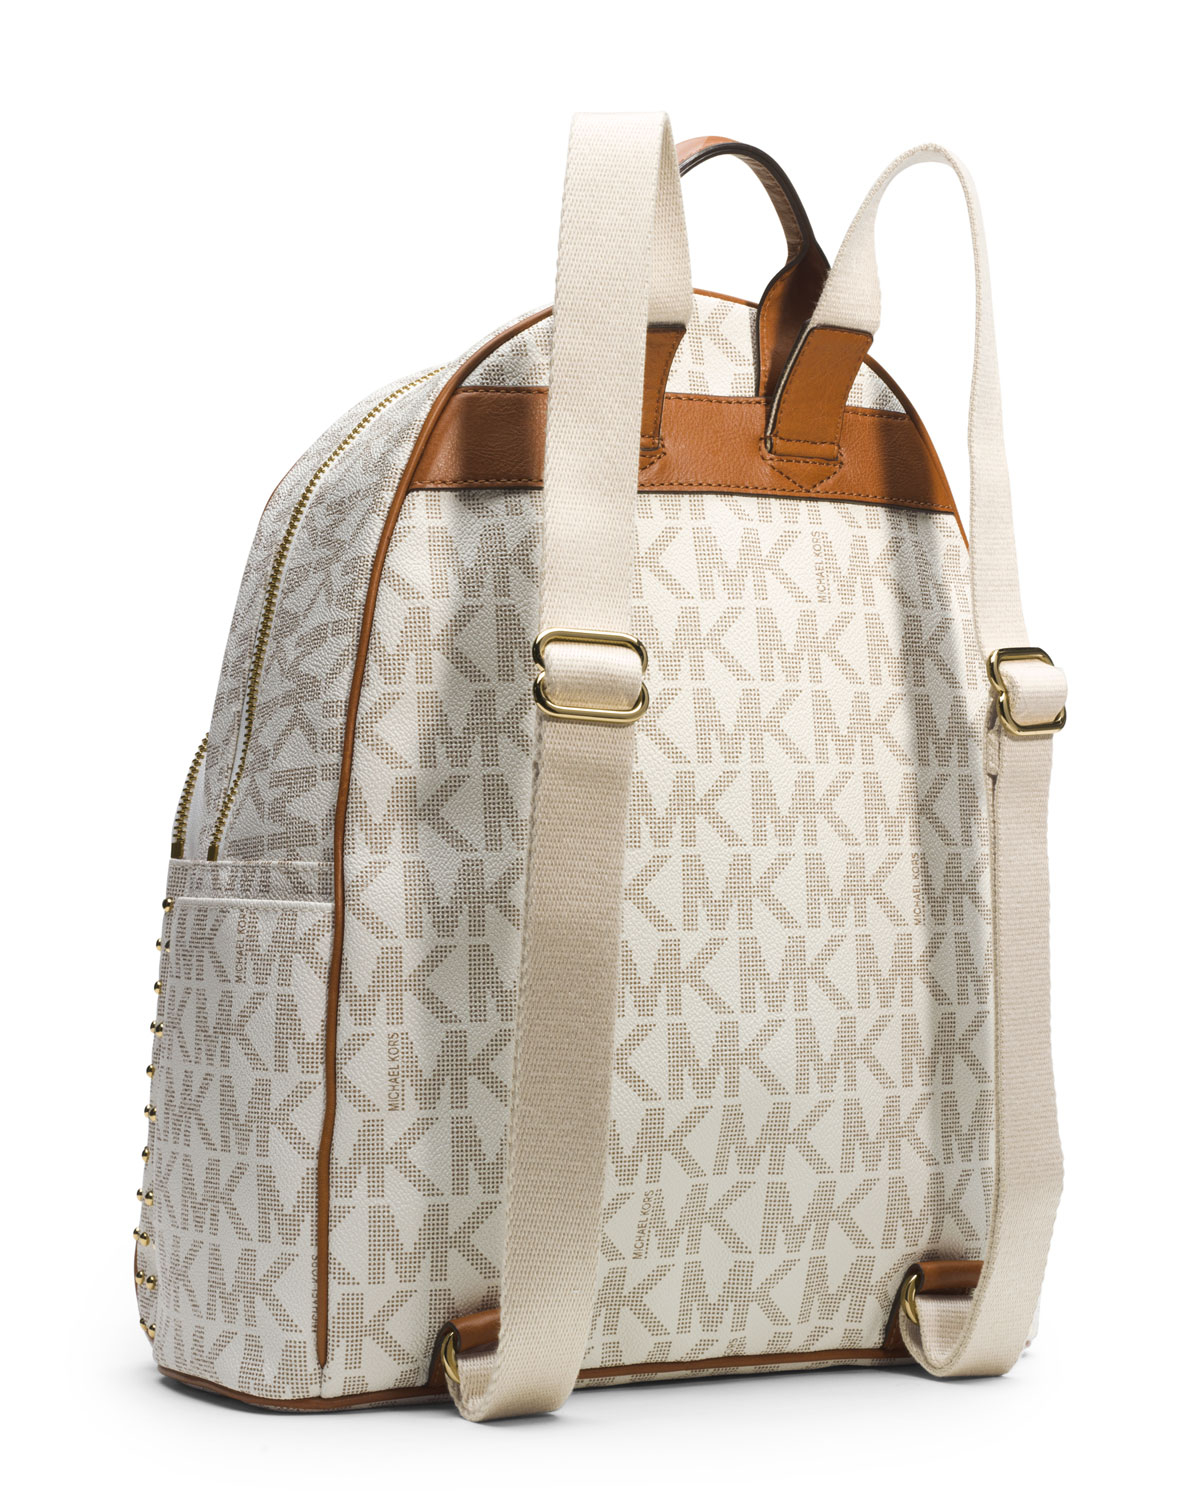 Michael michael kors Large Jet Set Studded Backpack in White | Lyst